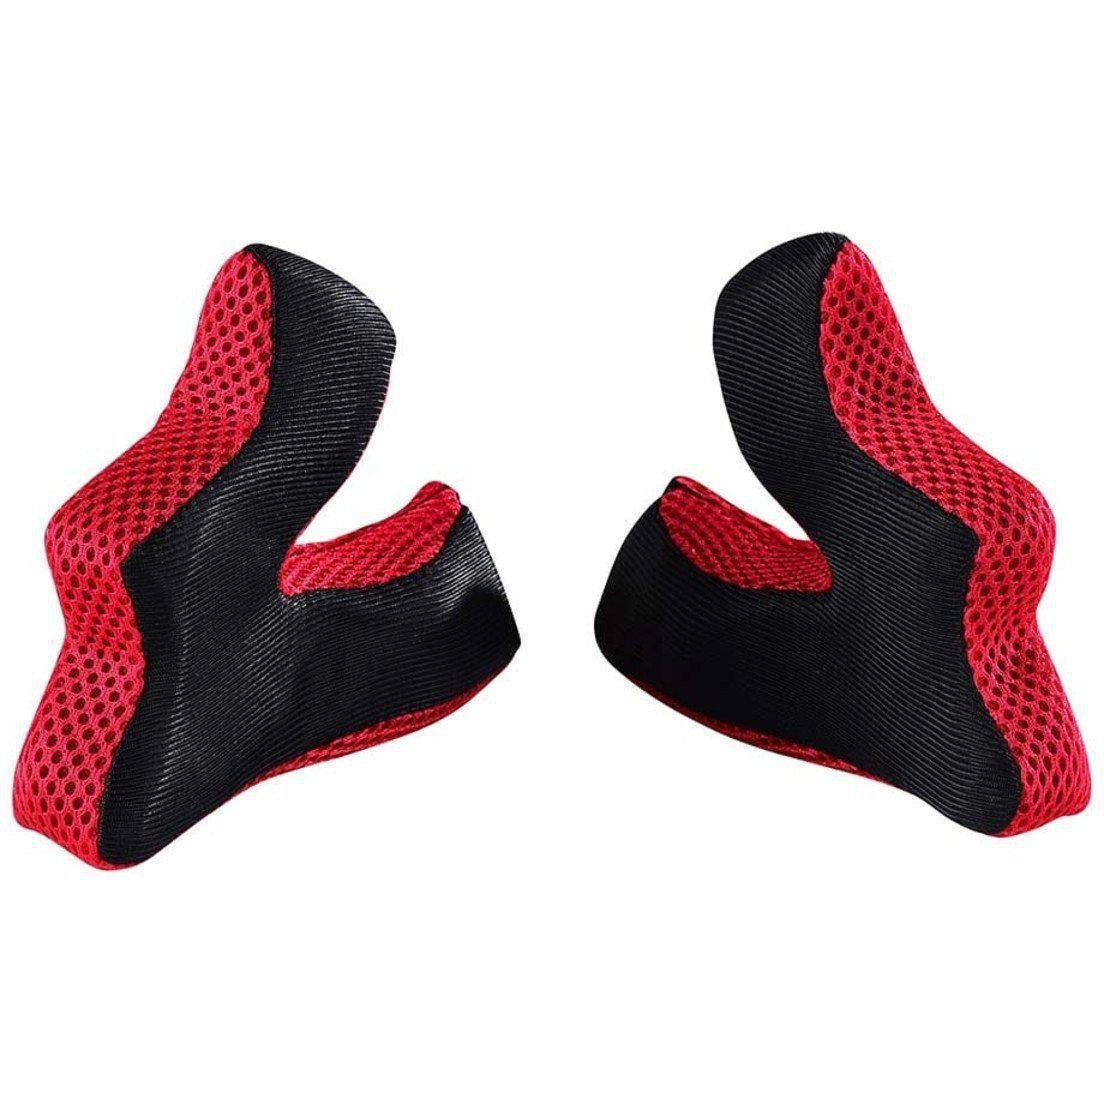 Troy Lee Designs D3 3D Replacement Cheekpad Padding